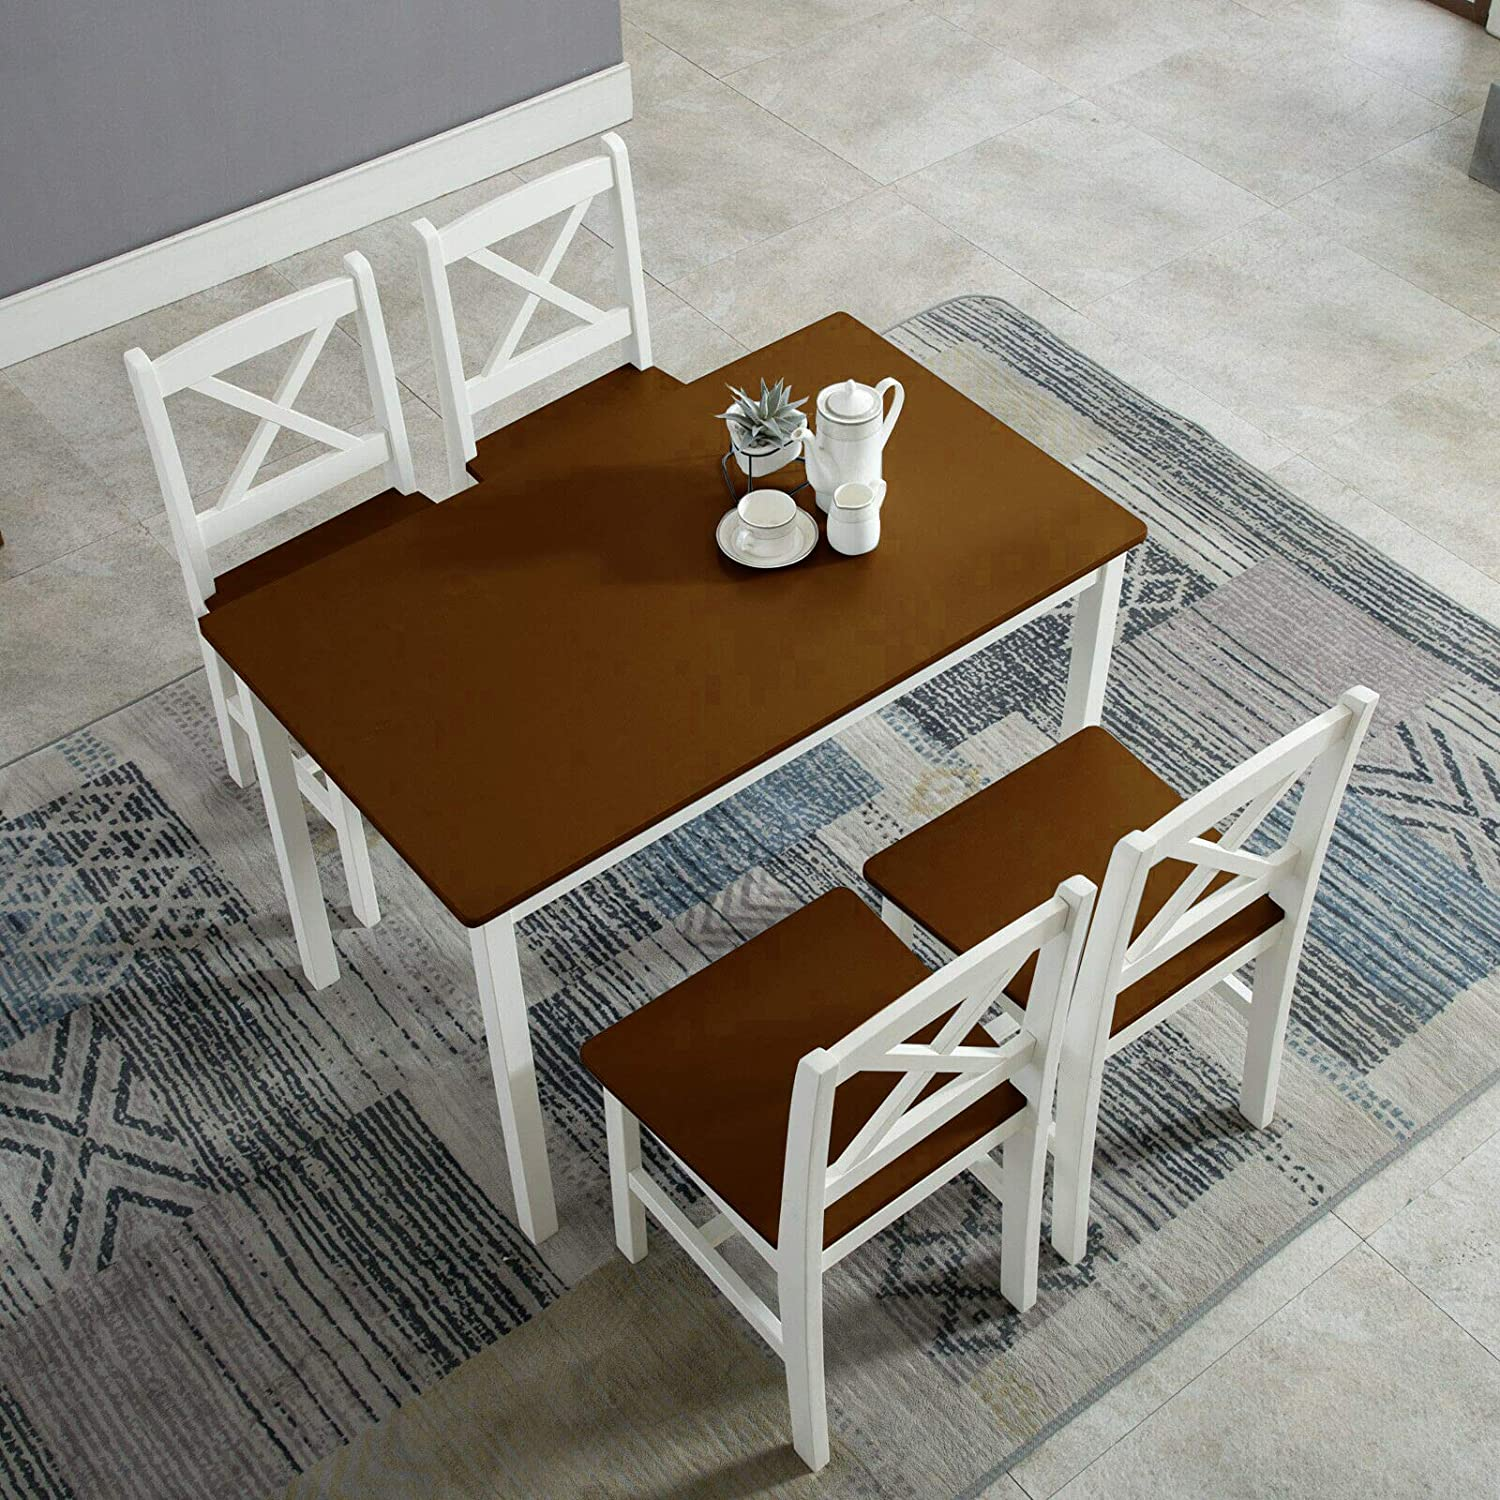 Office Dining Table And chairs set 4 Wooden Dining Table /& Chairs Living Room Dinning Furniture Tables Rectangular Dinner Table Furniture Set for Home Kitchen Modern Design For Dining Room